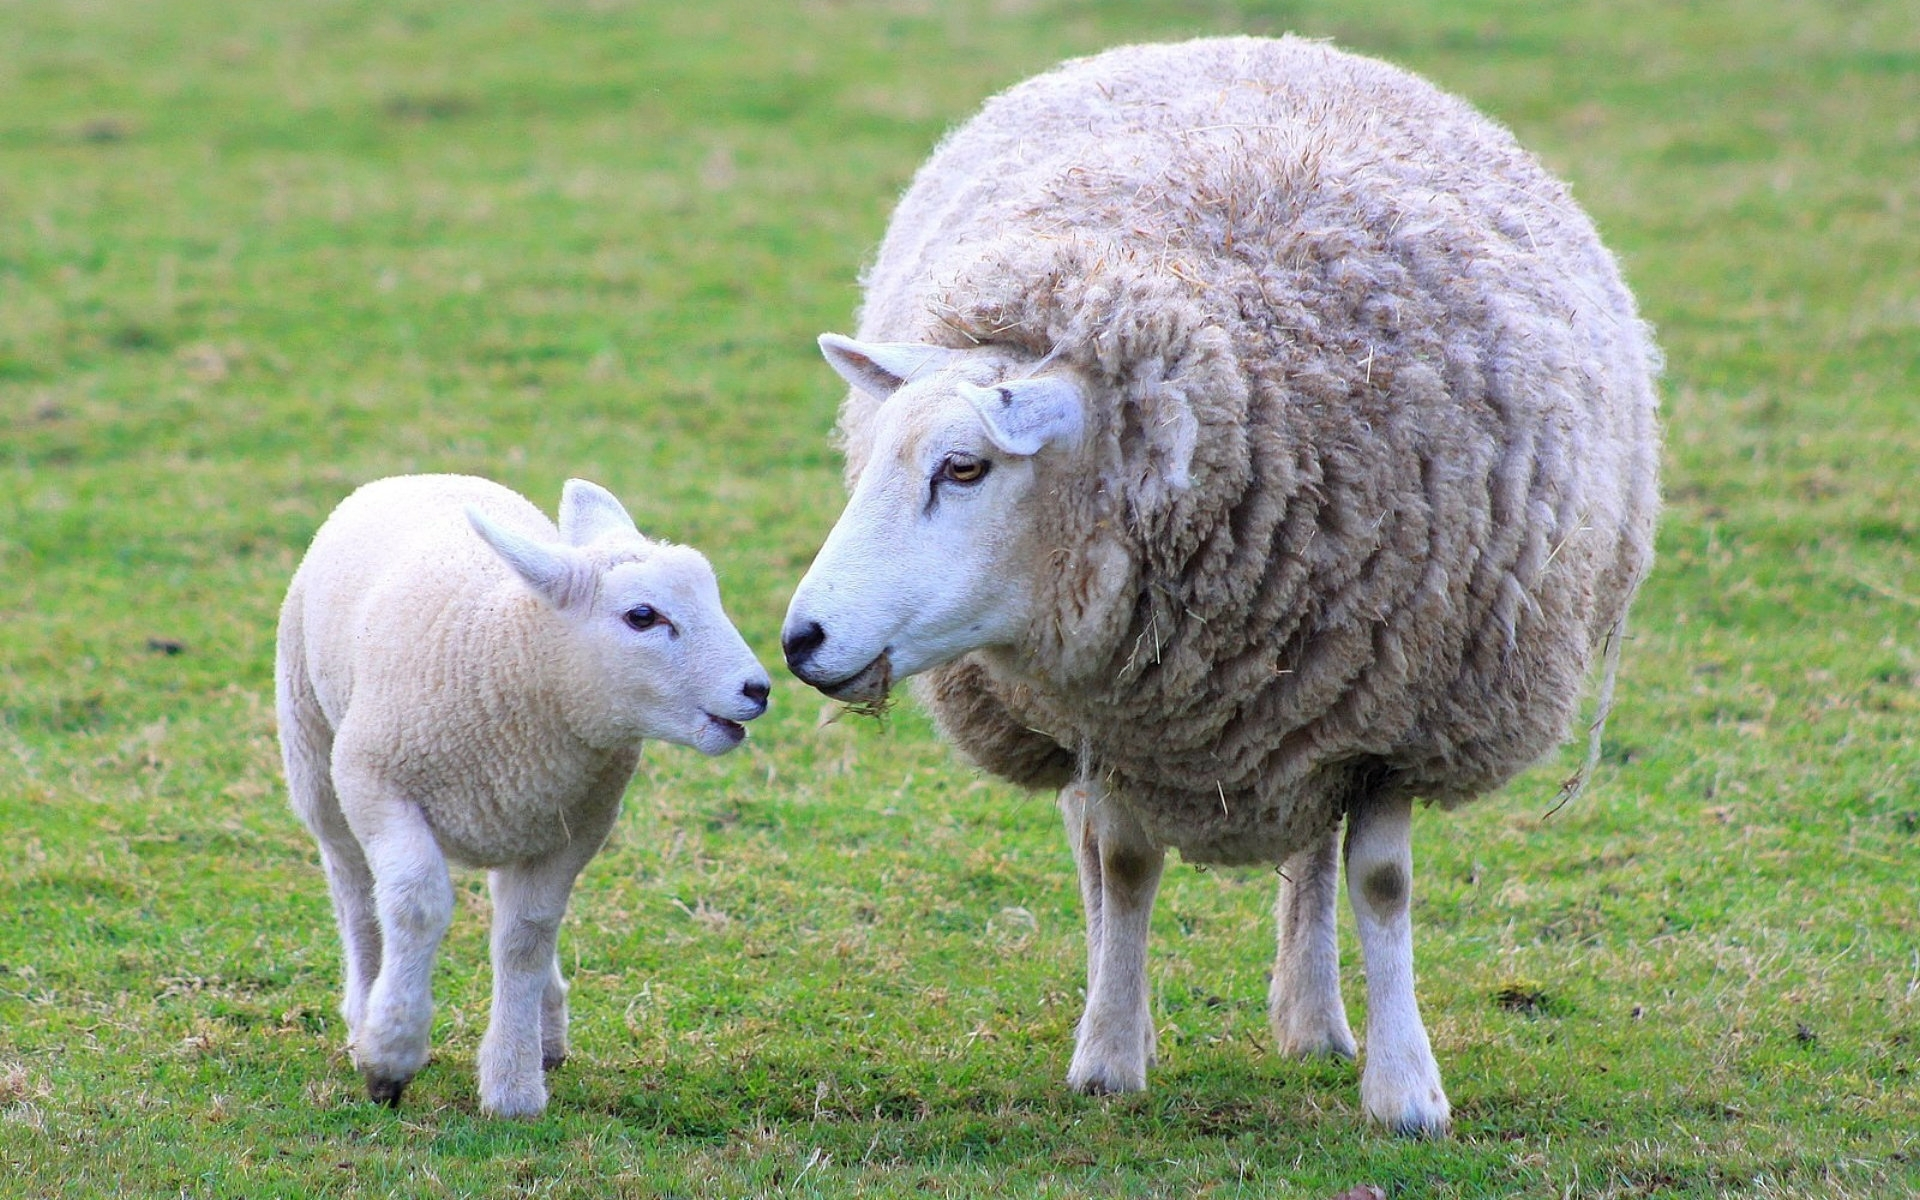 Free Download Sheep Images Ewe And Lamb Hd Wallpaper And Background Photos 1920x1200 For Your Desktop Mobile Tablet Explore 32 Sheep Wallpapers Sheep Wallpaper Sheep Wallpapers Hd Sheep Wallpaper